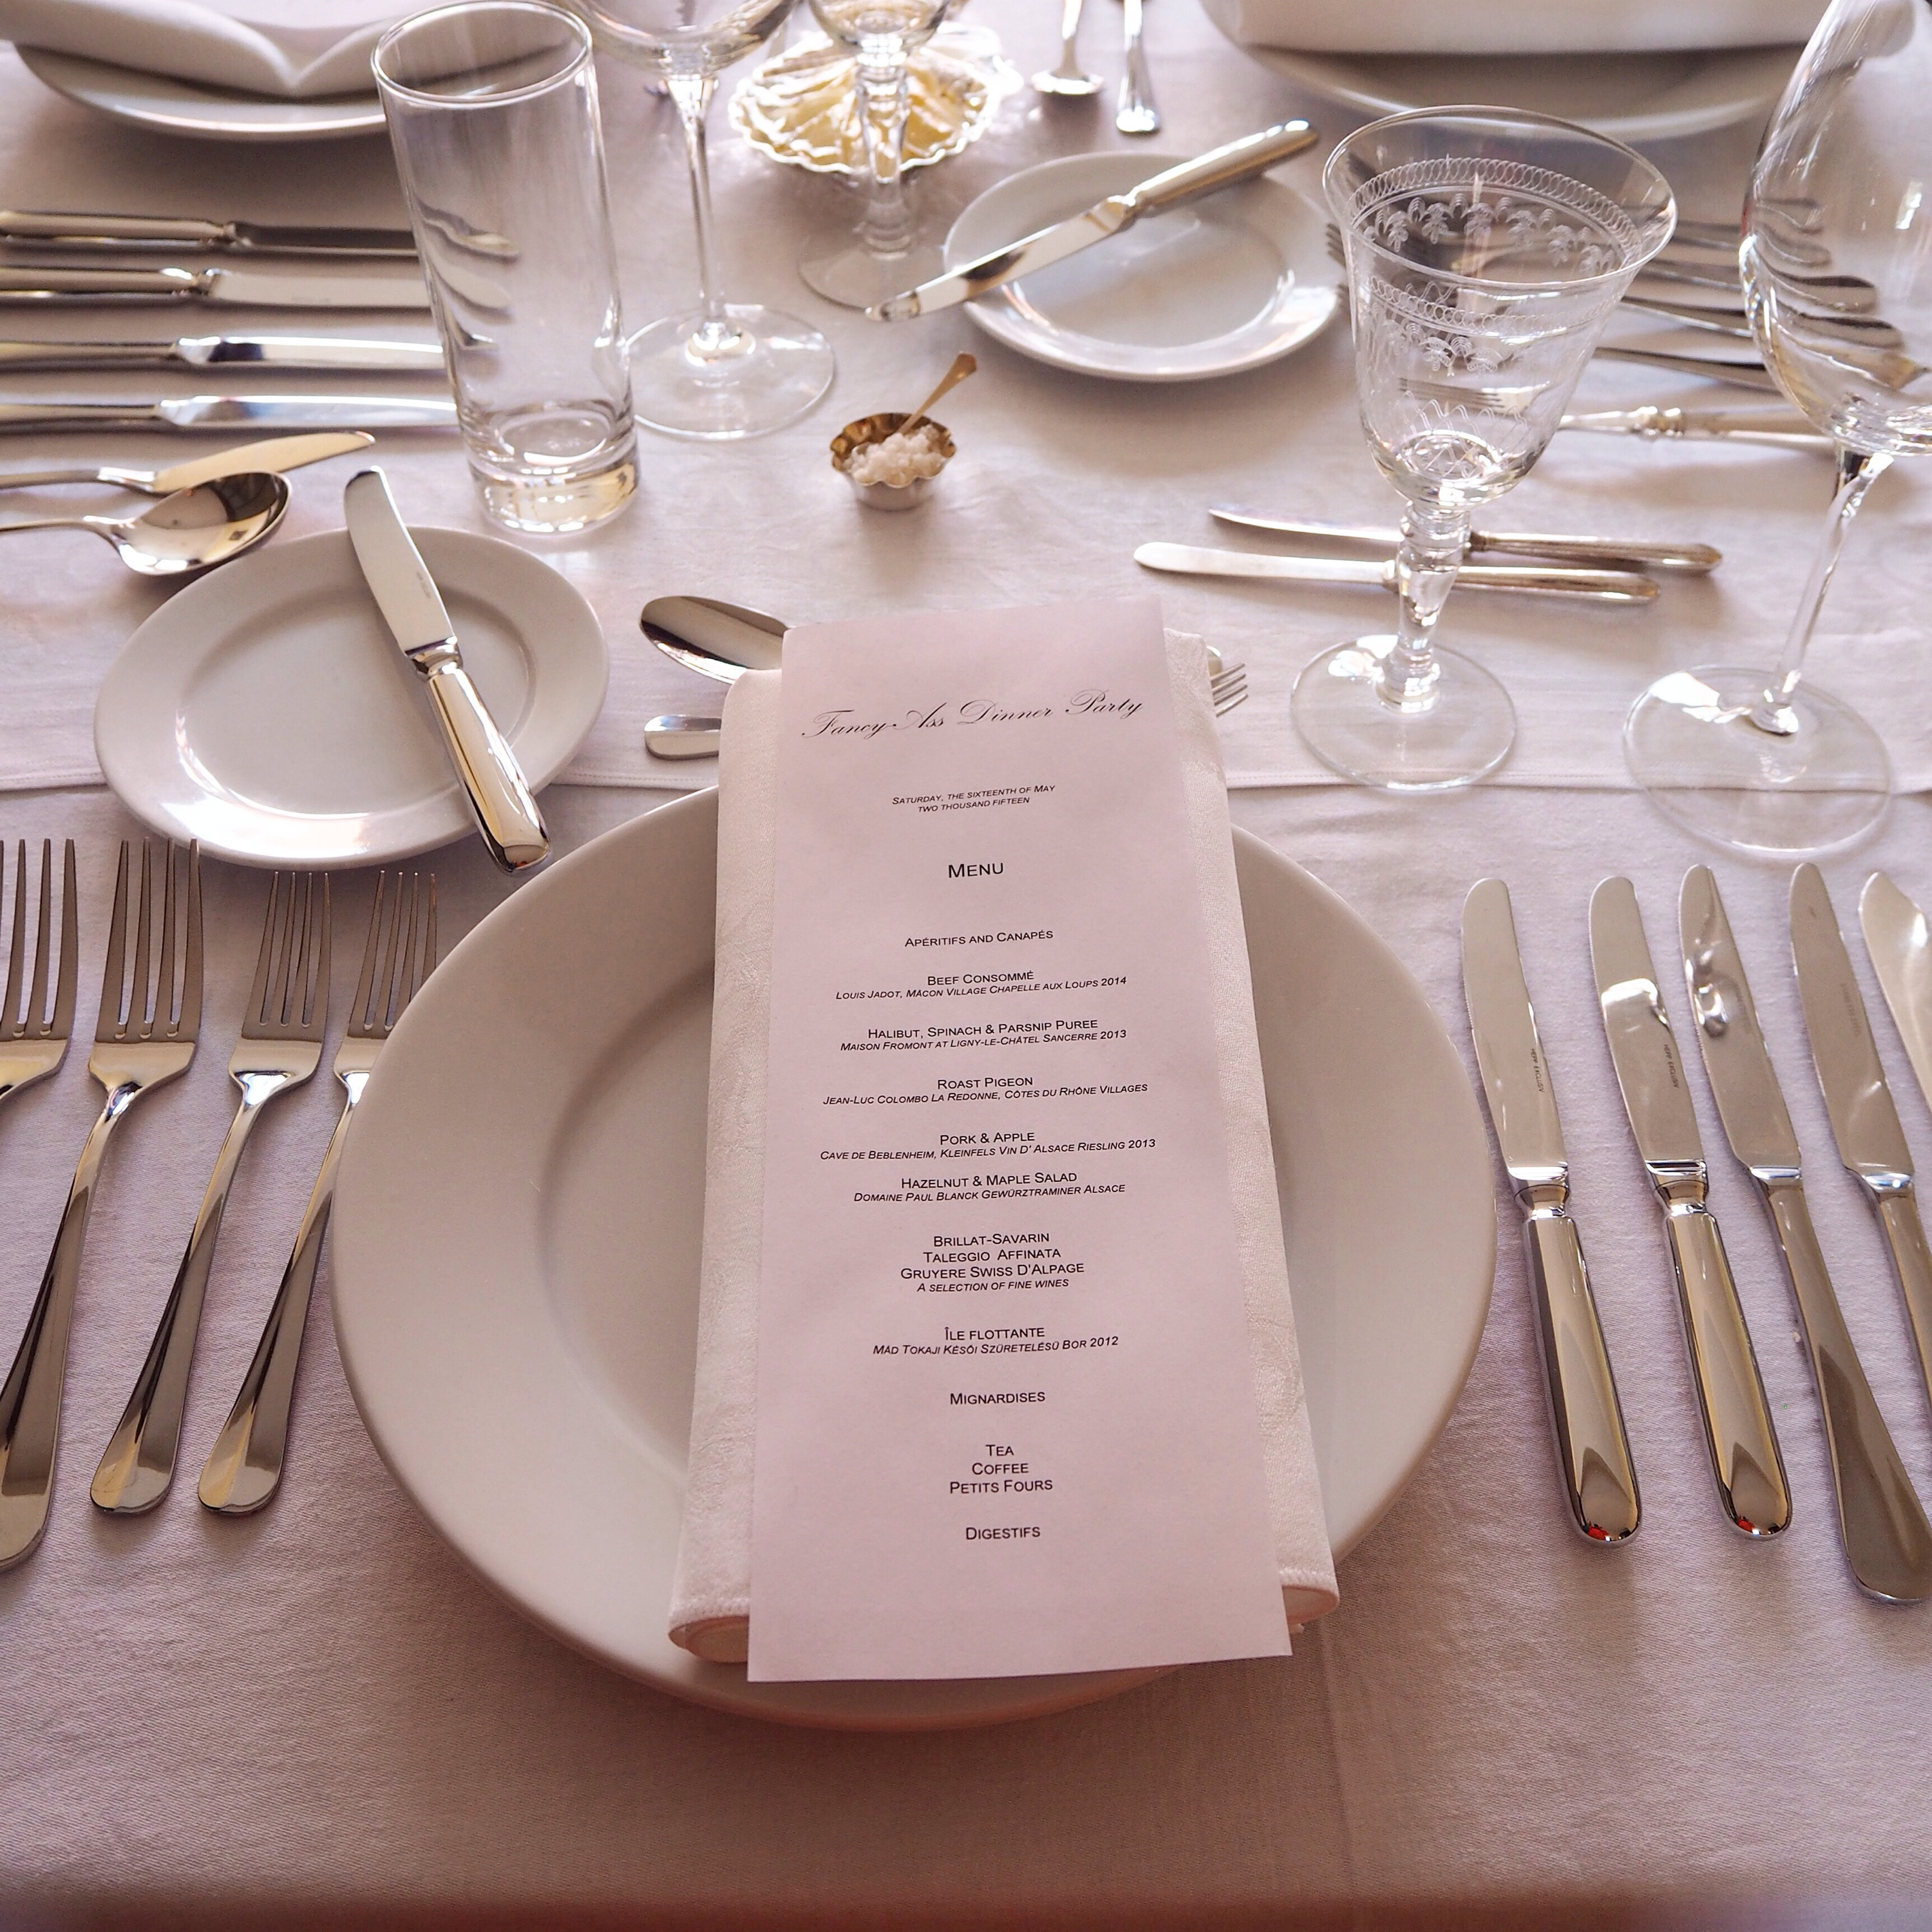 Full Table Setting with Menu